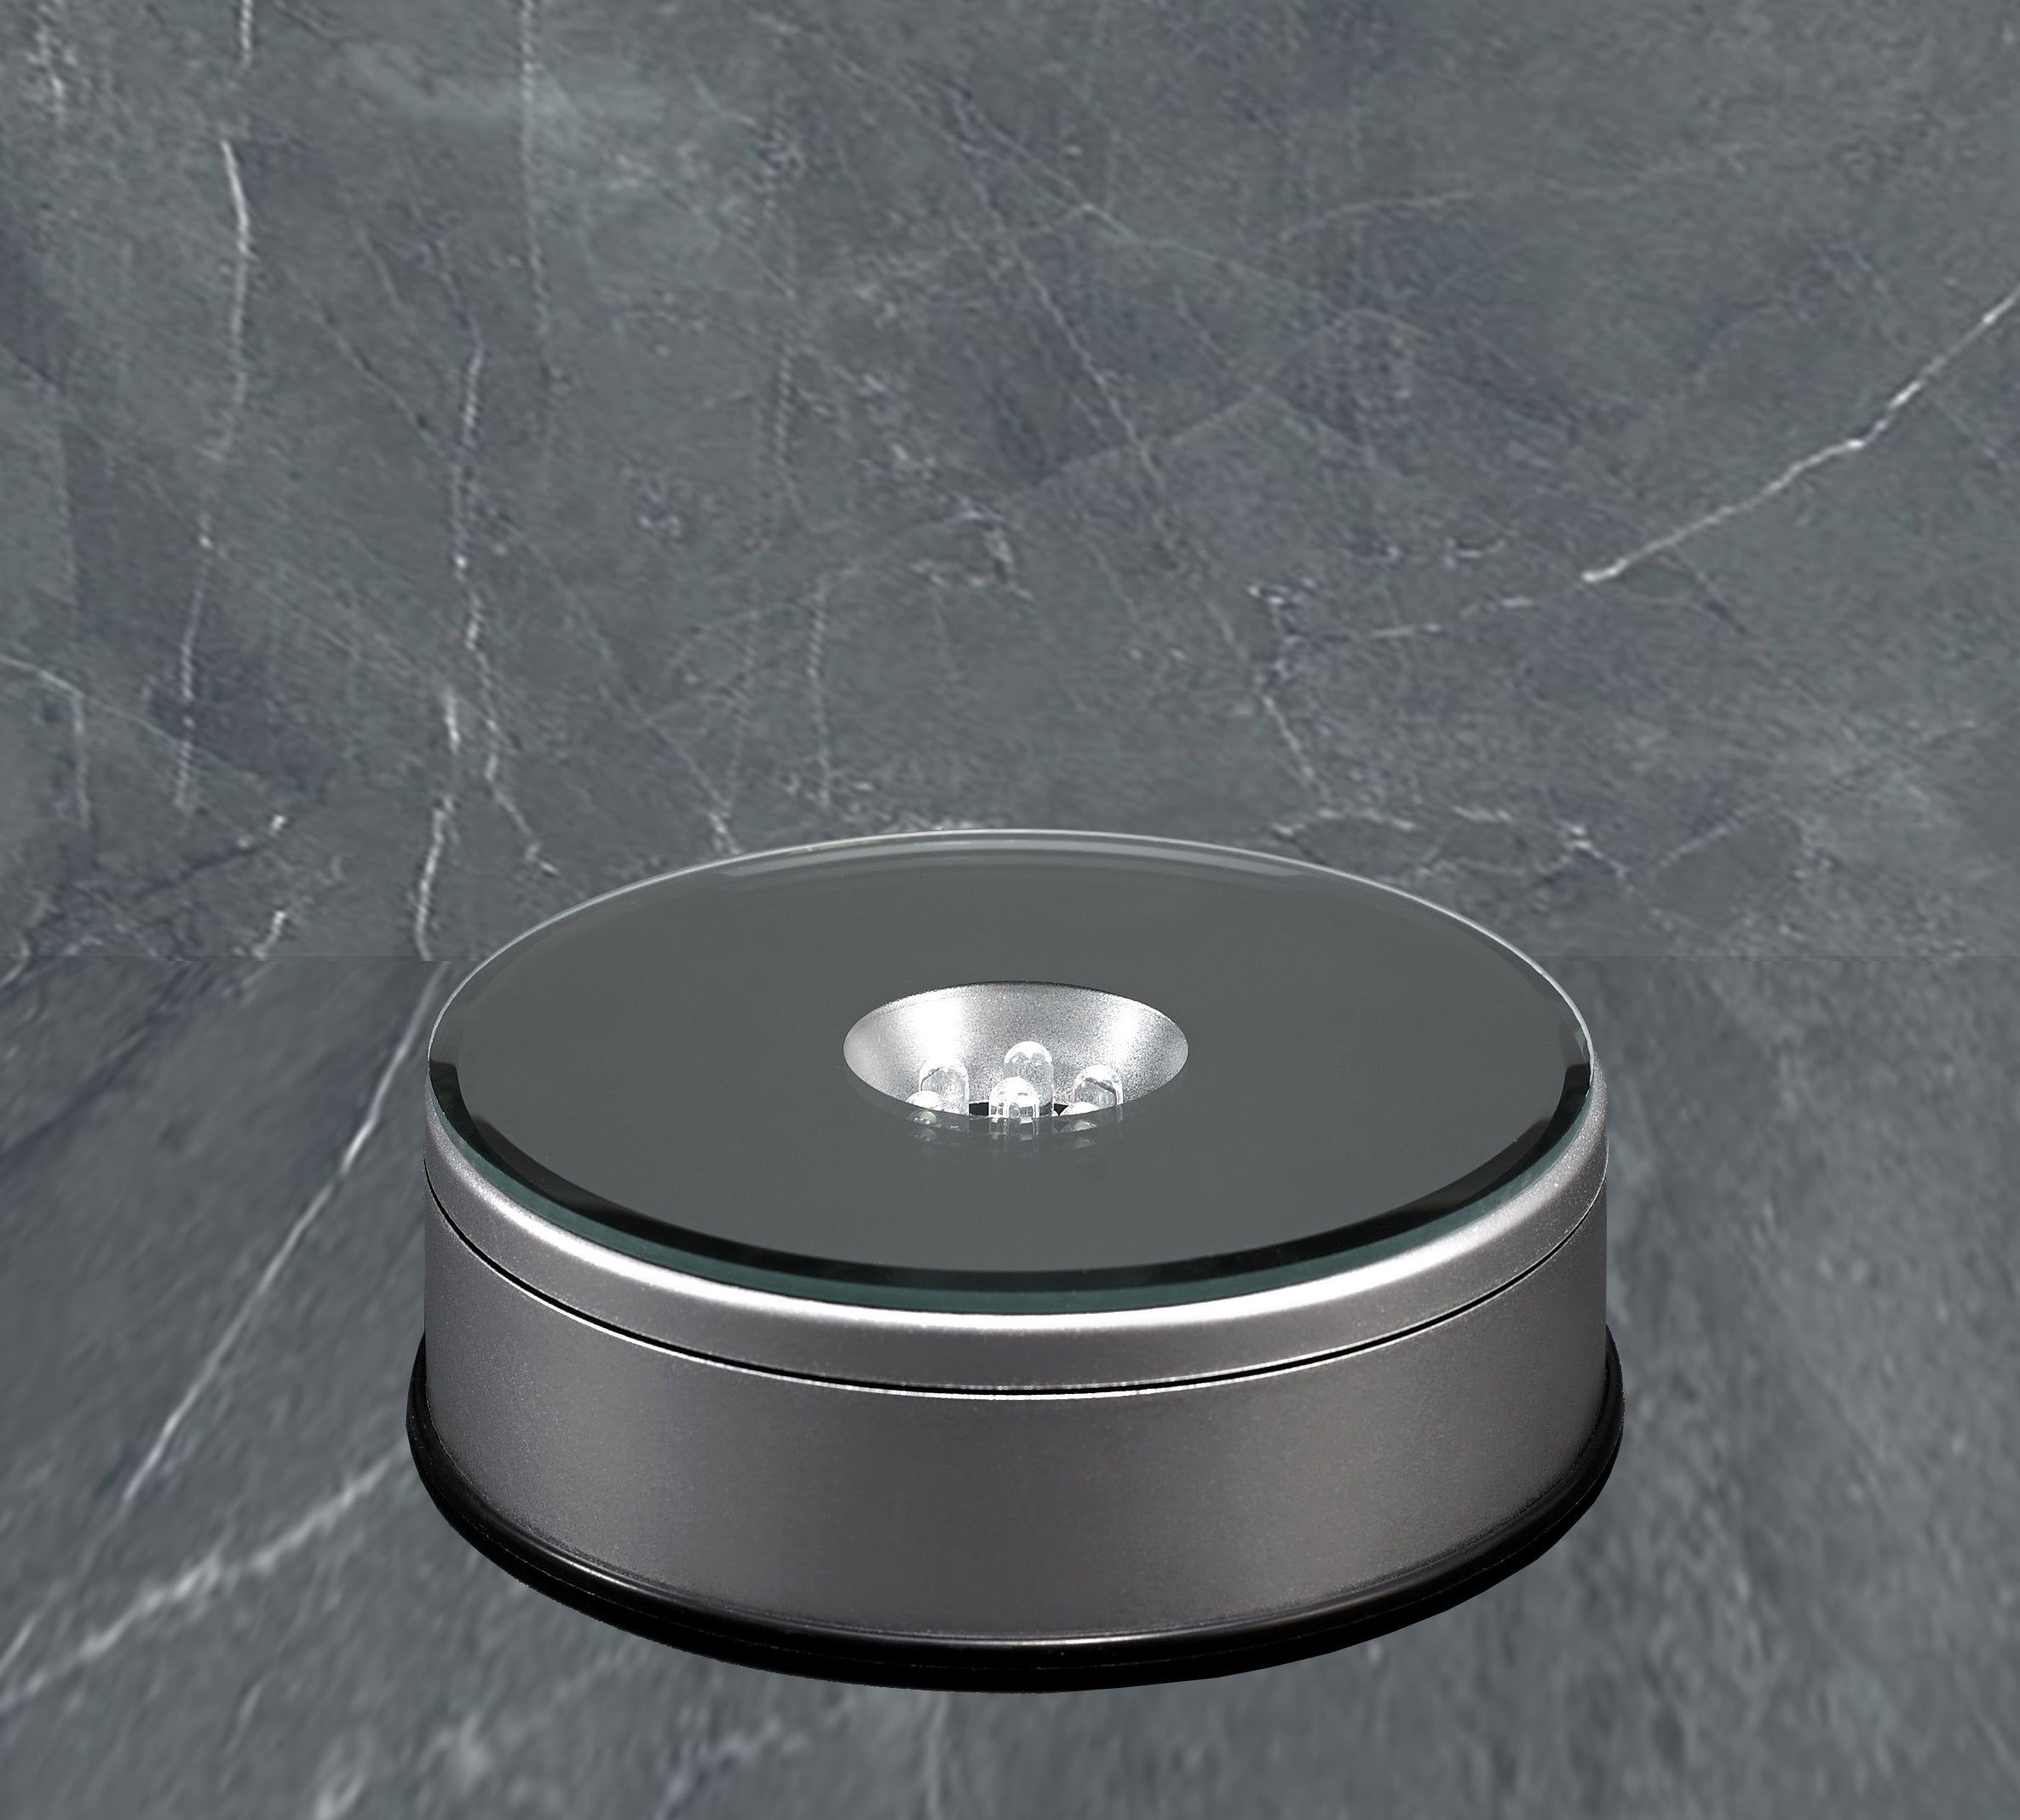 Medium Round Light Base (Rotating) - Silver Finish